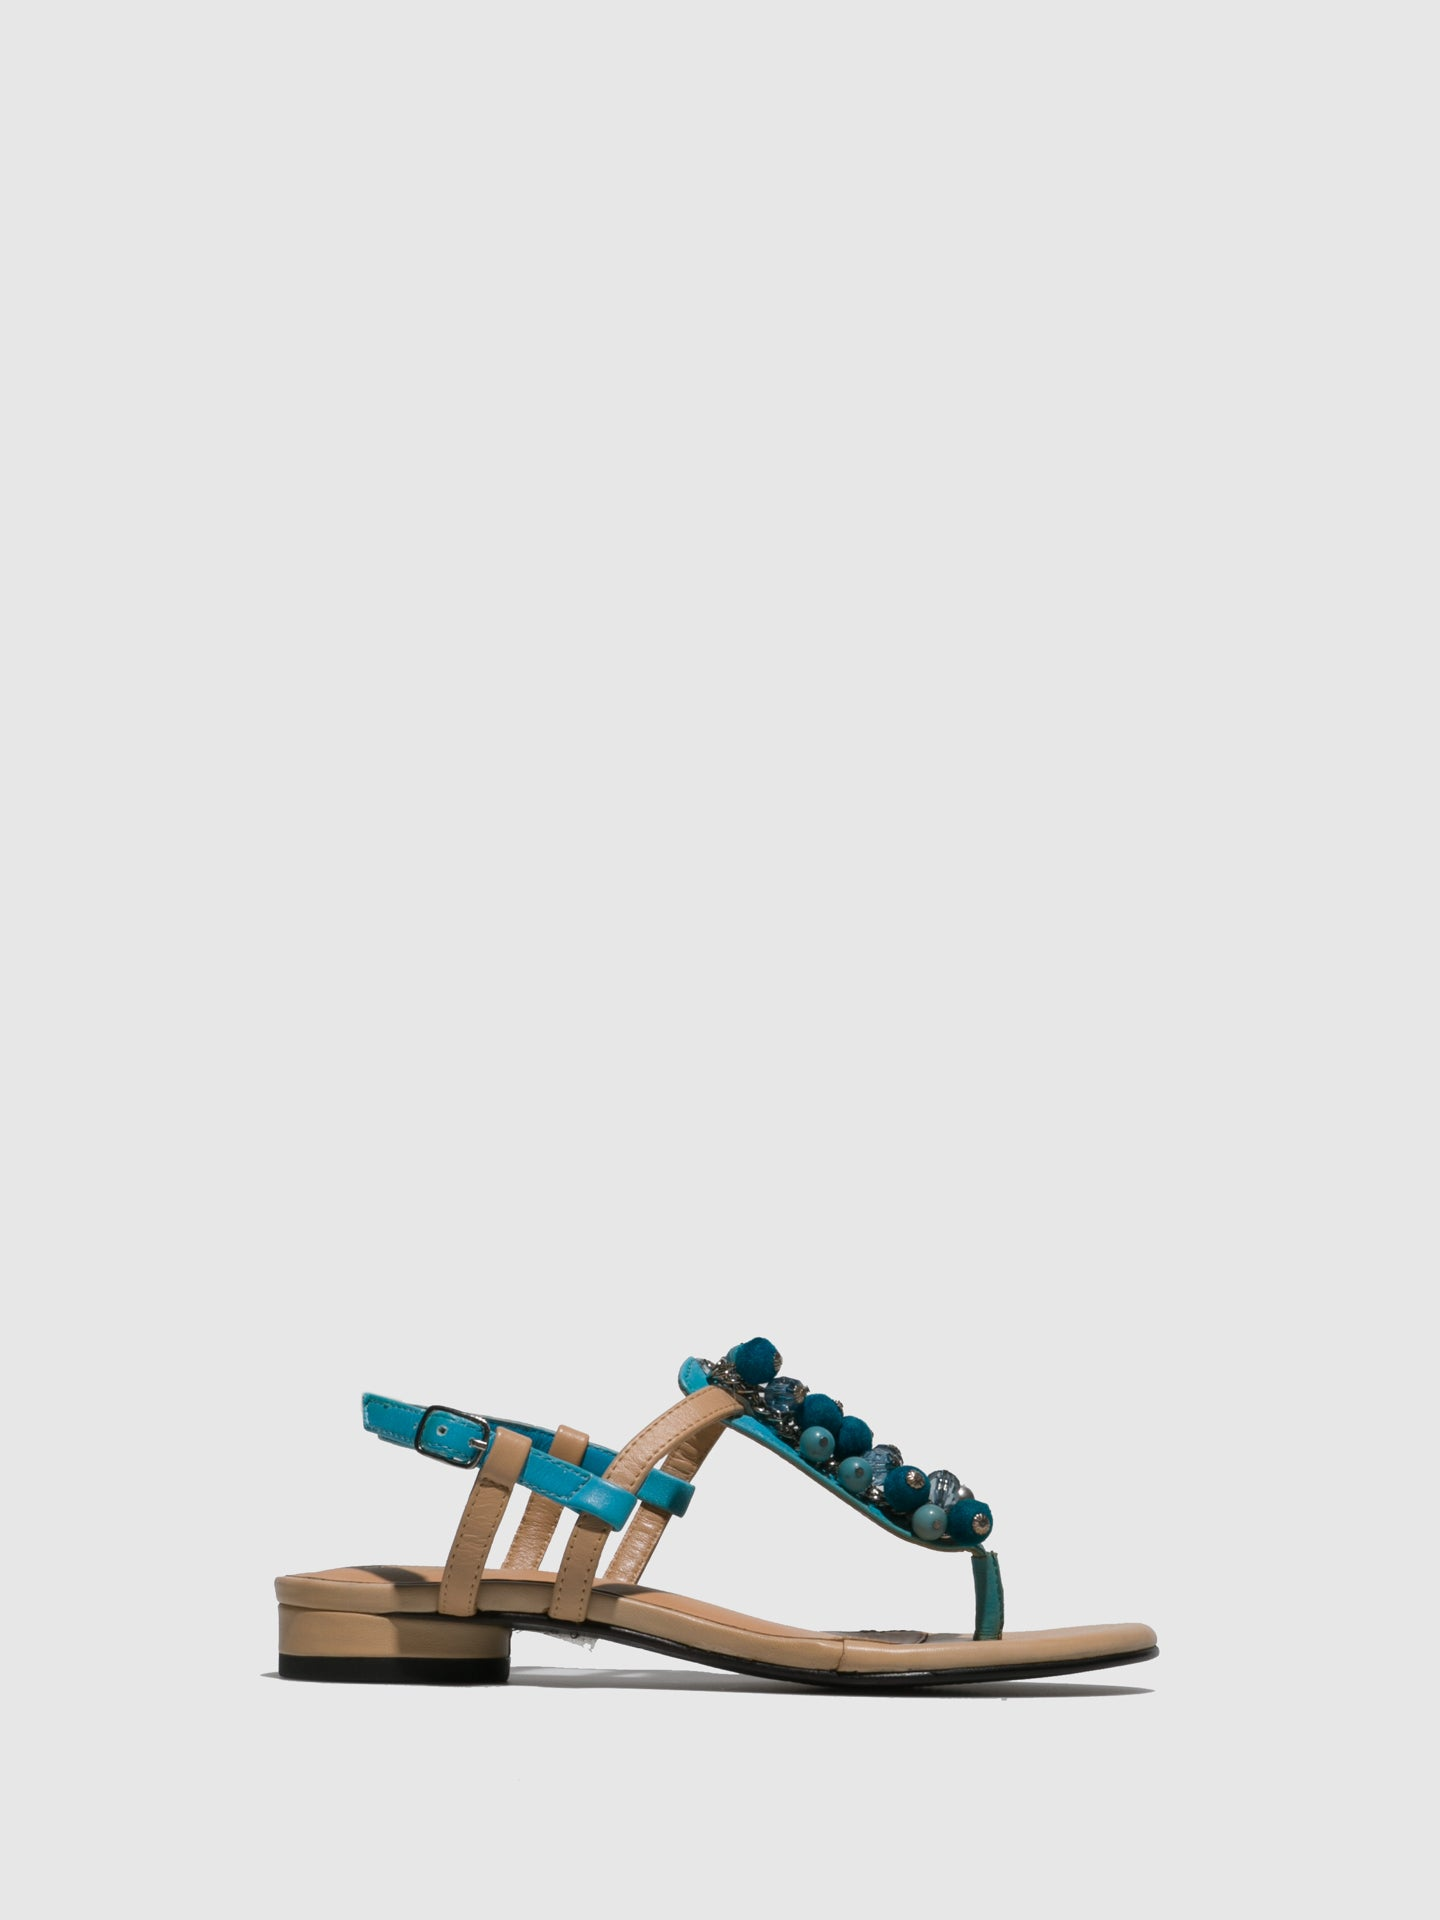 Parodi Sunshine SkyBlue Appliqués Sandals